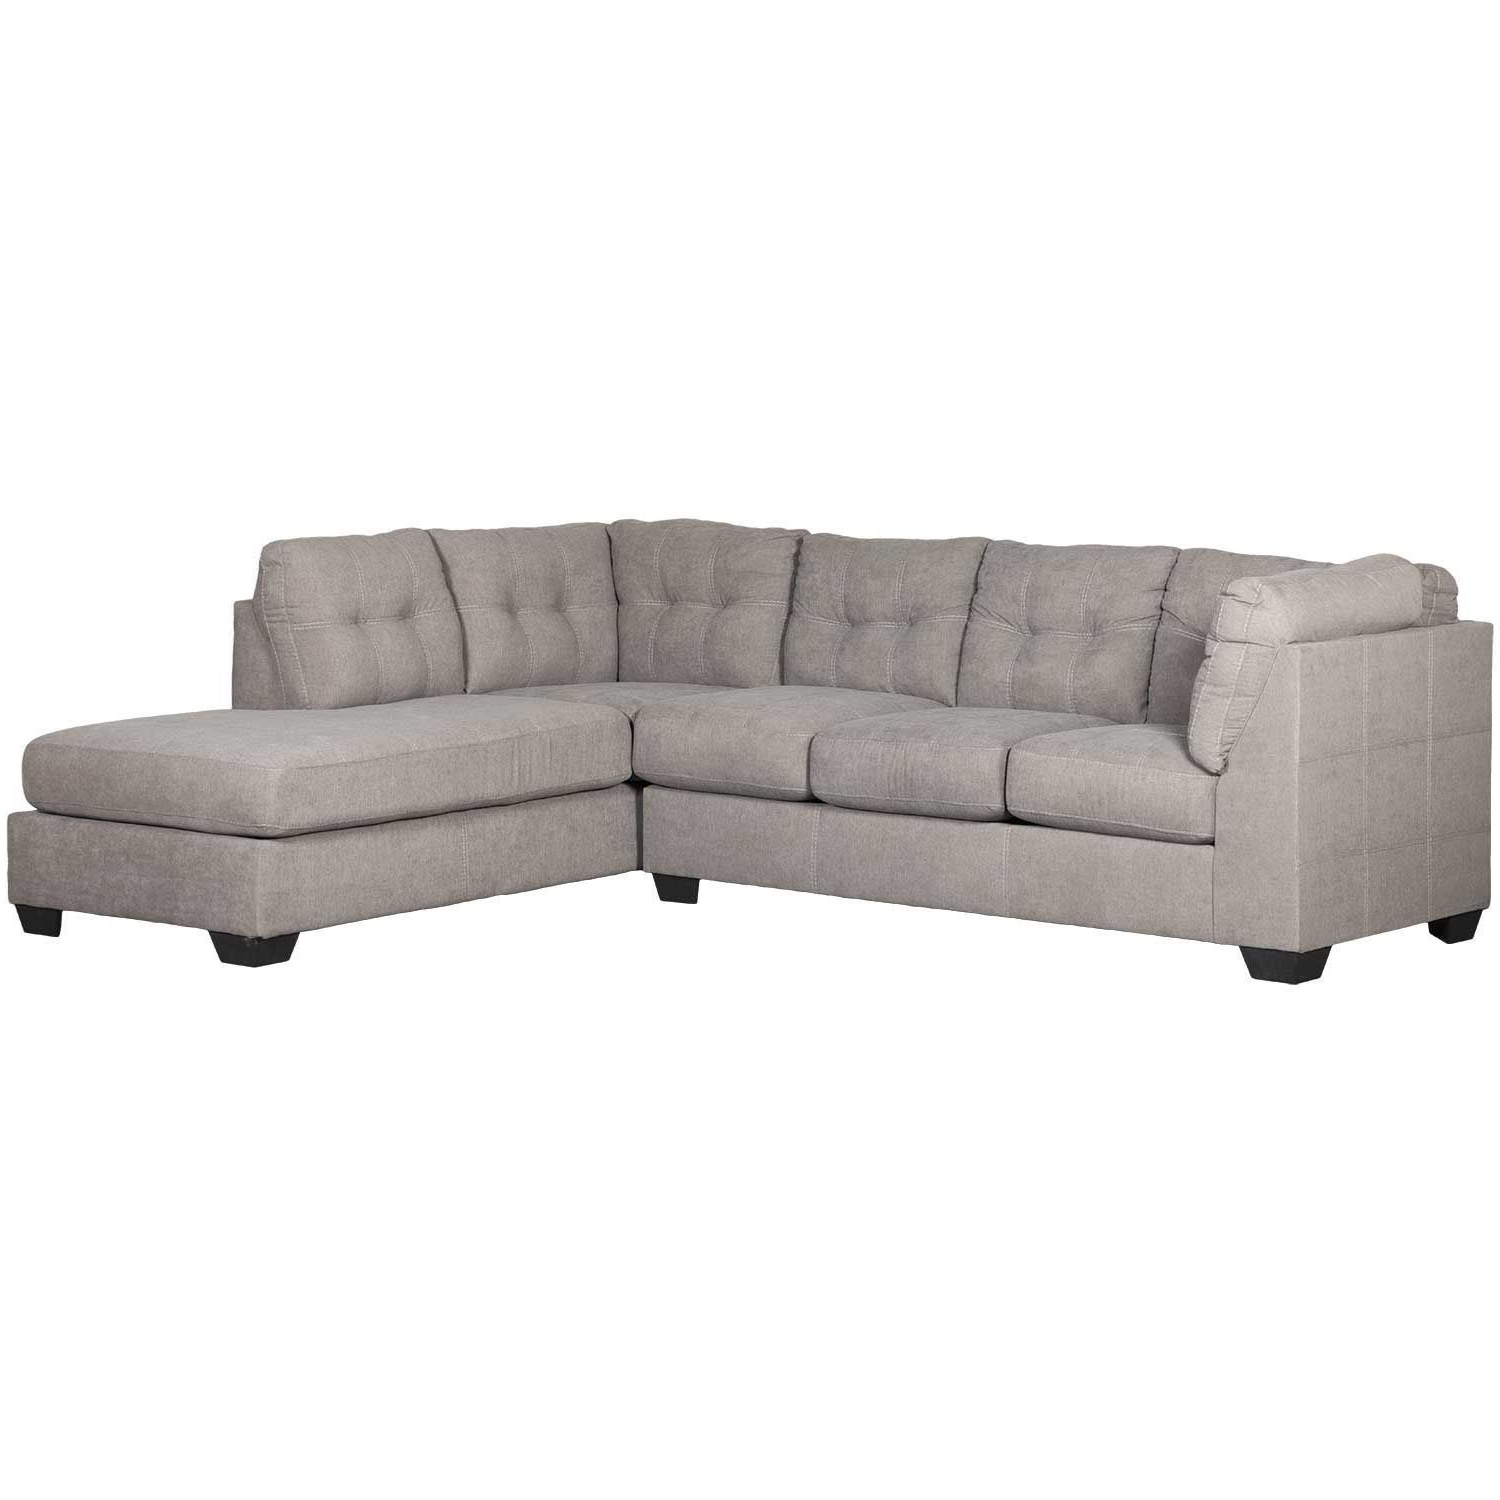 Maier Charcoal 2 Piece Sectional With Raf Chaise Inside 2018 2pc Burland Contemporary Sectional Sofas Charcoal (View 20 of 20)